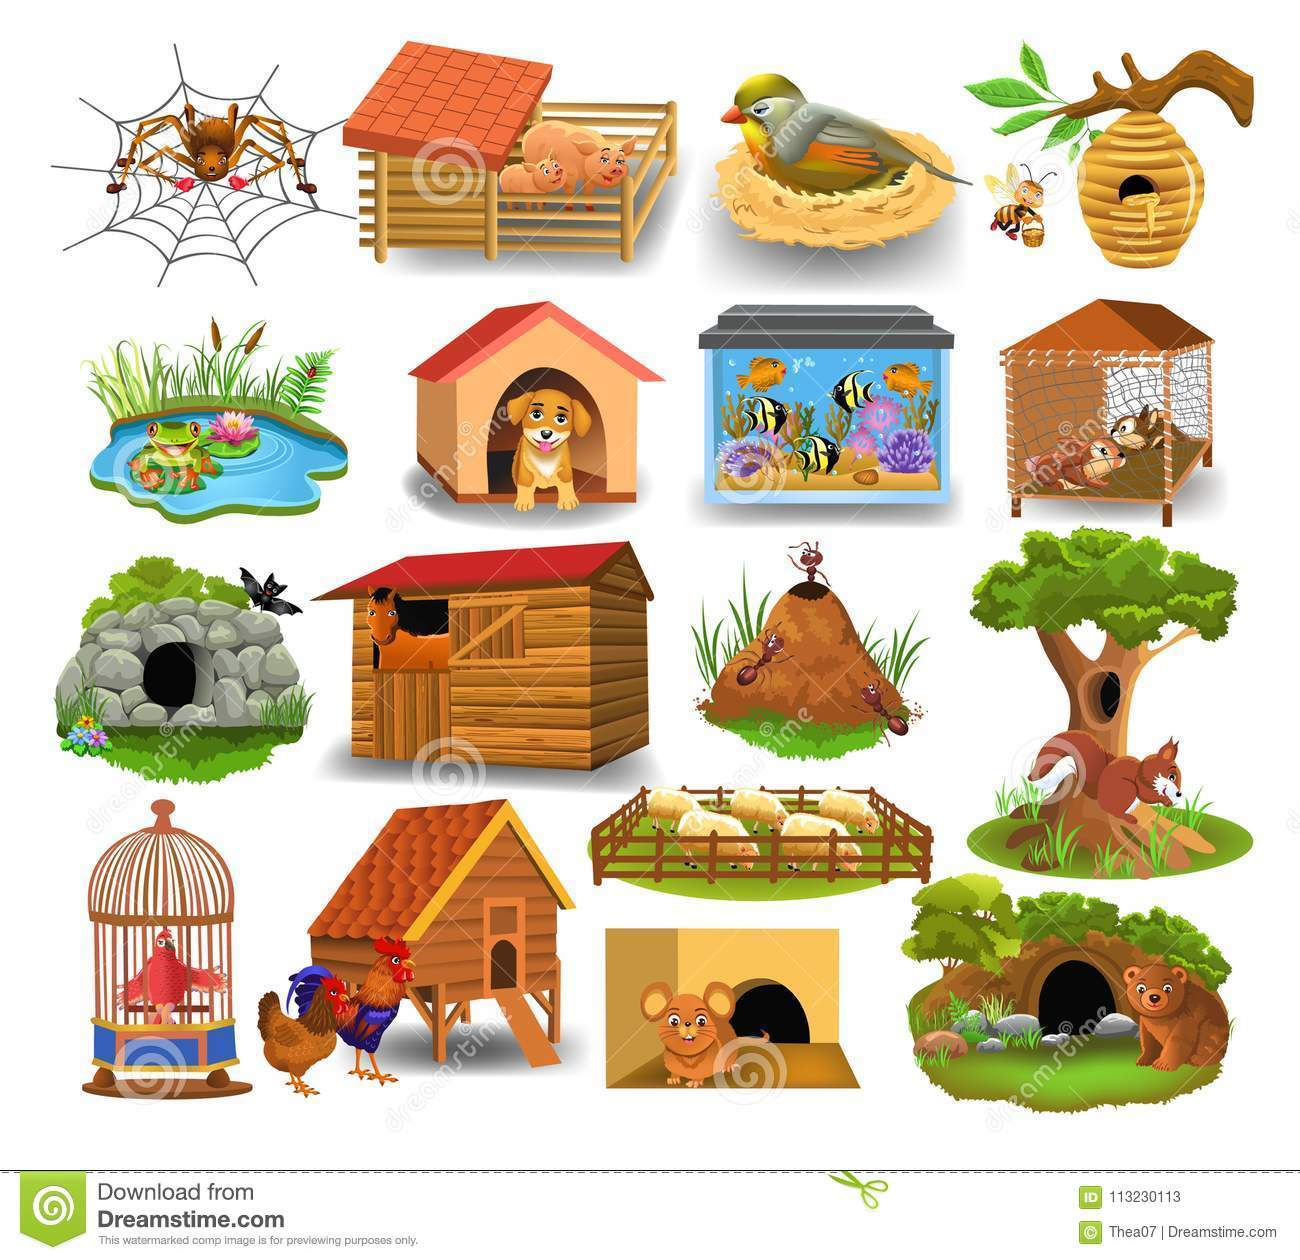 Animals homes clipart royalty free library Homes of animals clipart 7 » Clipart Portal royalty free library